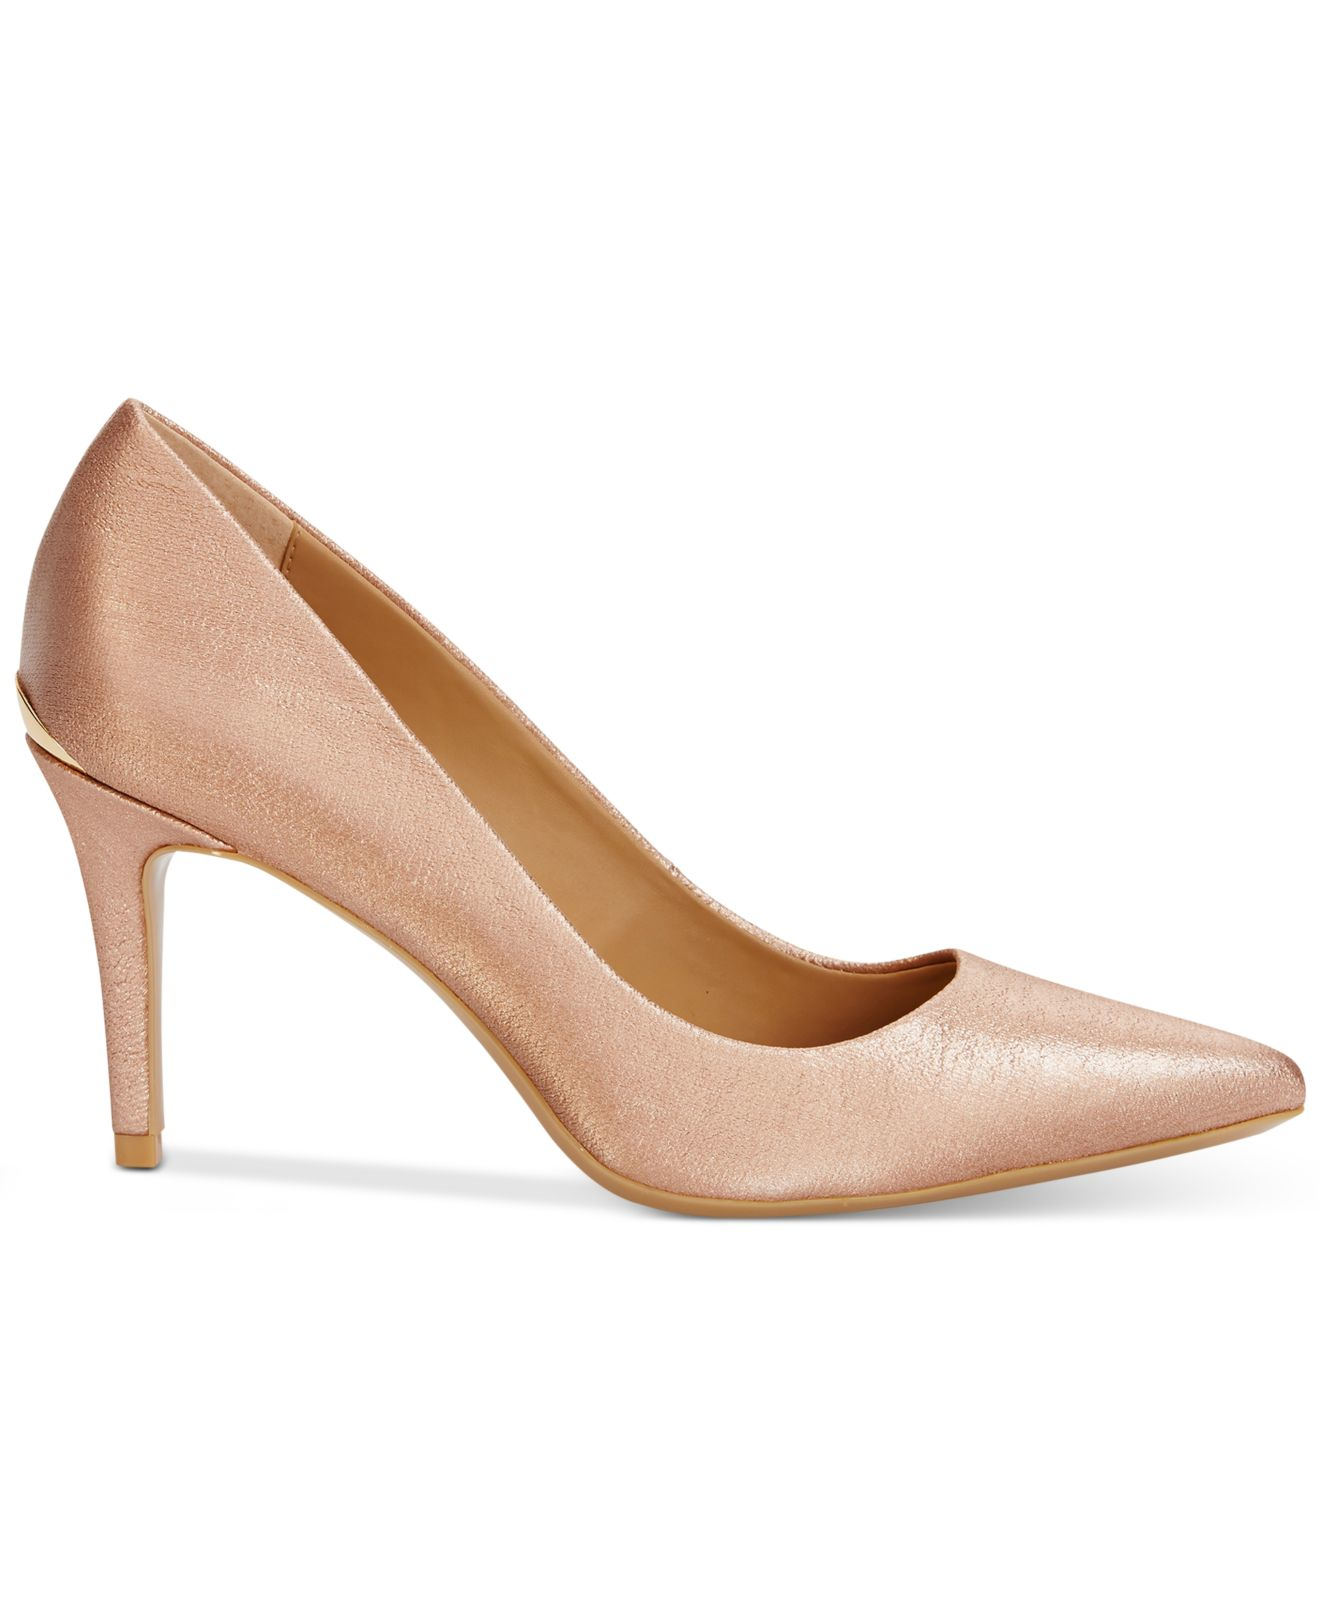 Gallery. Previously sold at: Macy's · Women's Pointed Toe Pumps